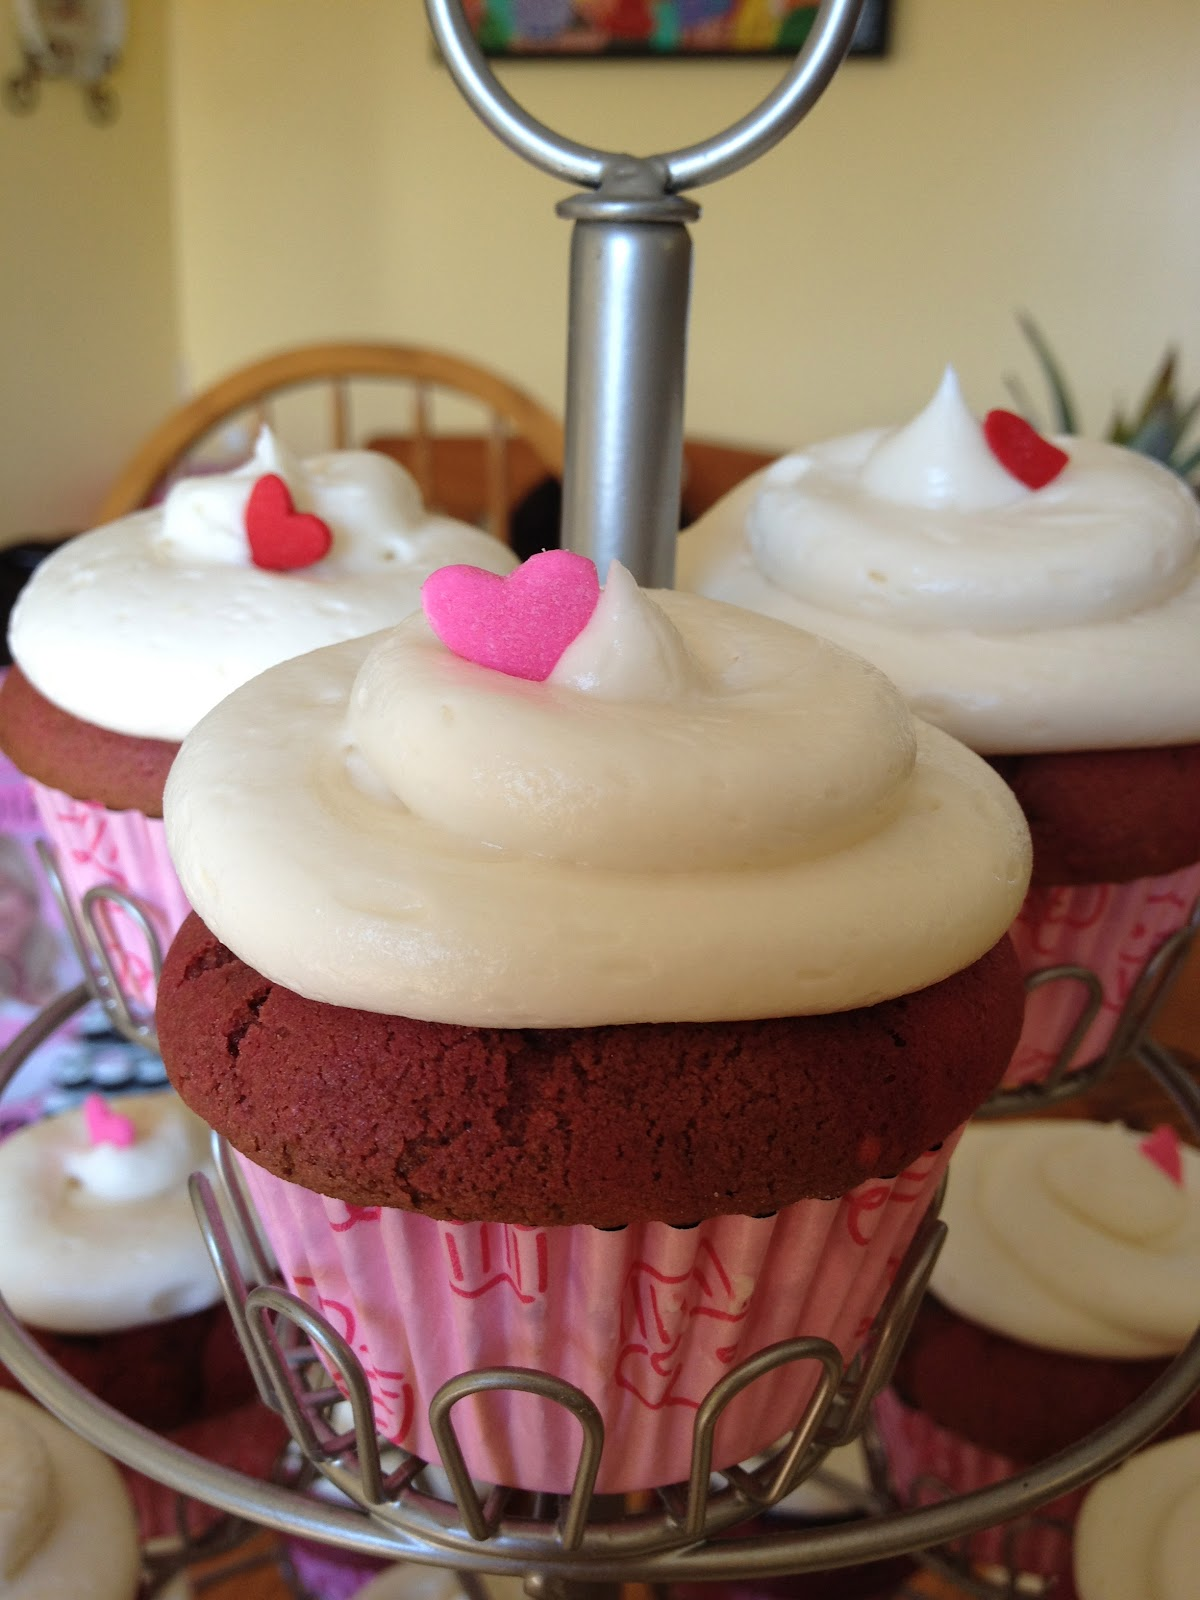 5 Photos of Red Velvet Cupcakes With Chocolate Filling